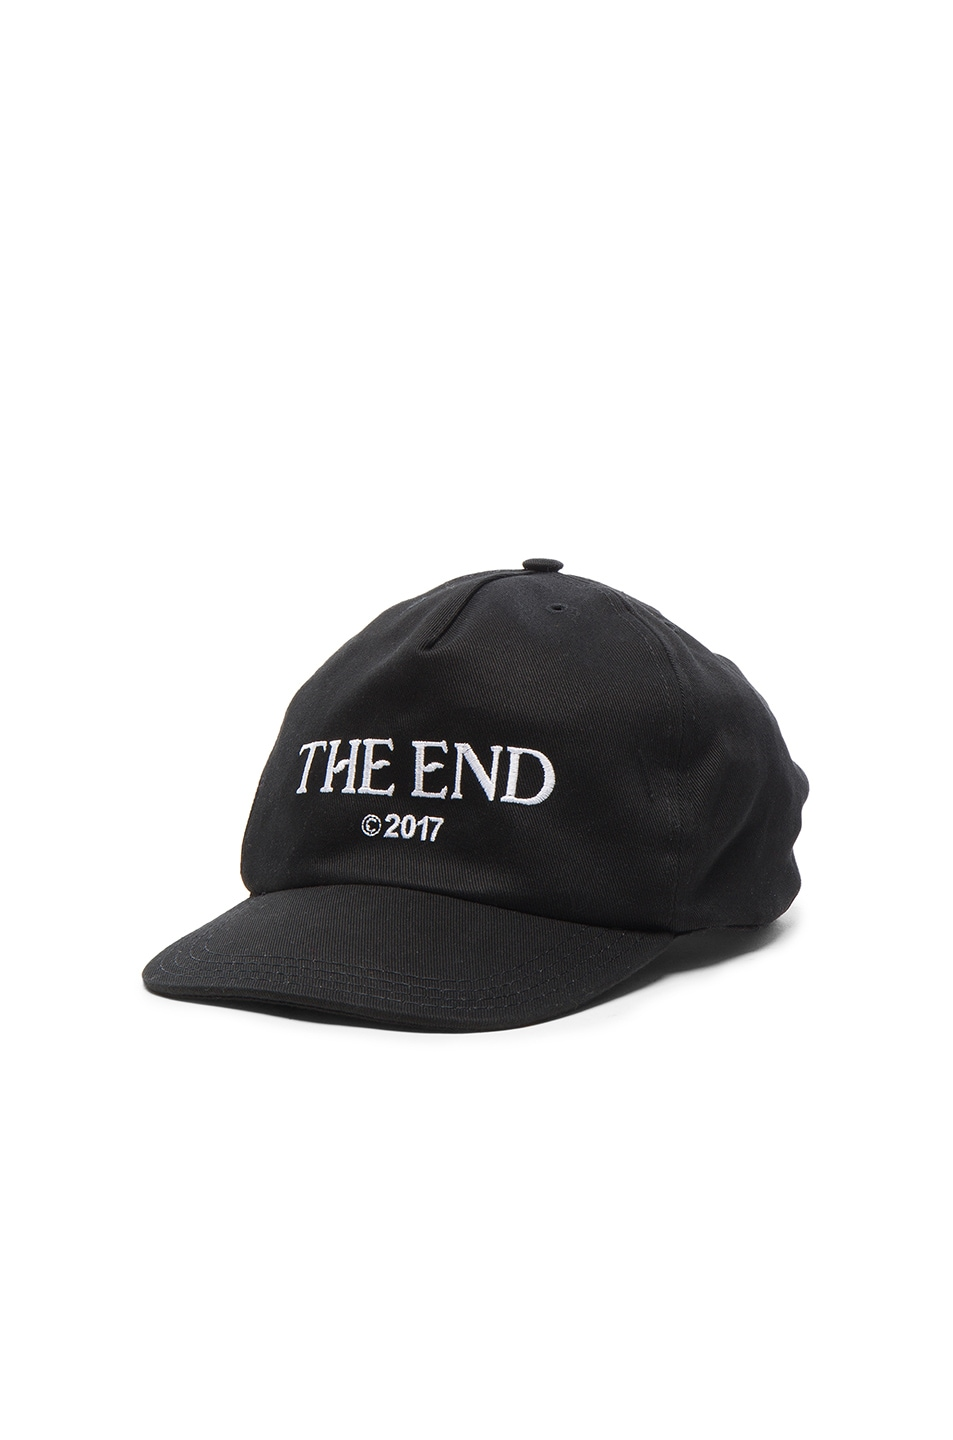 Image 2 of OFF-WHITE The End Cap in Black   White 838990652923